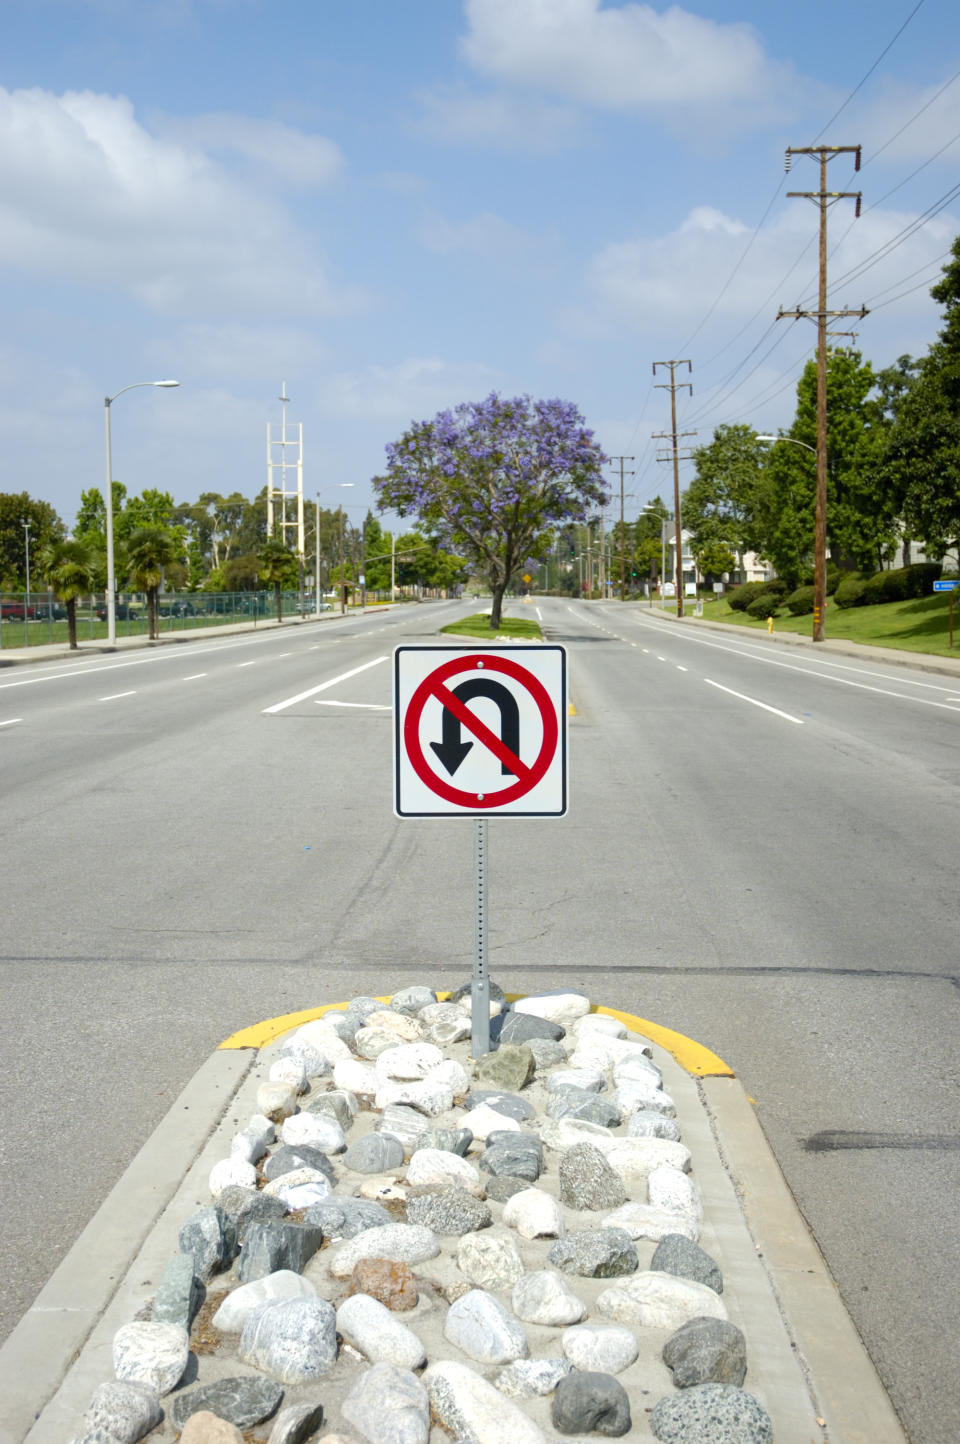 No u-turn sign in the street. Source: Getty Images